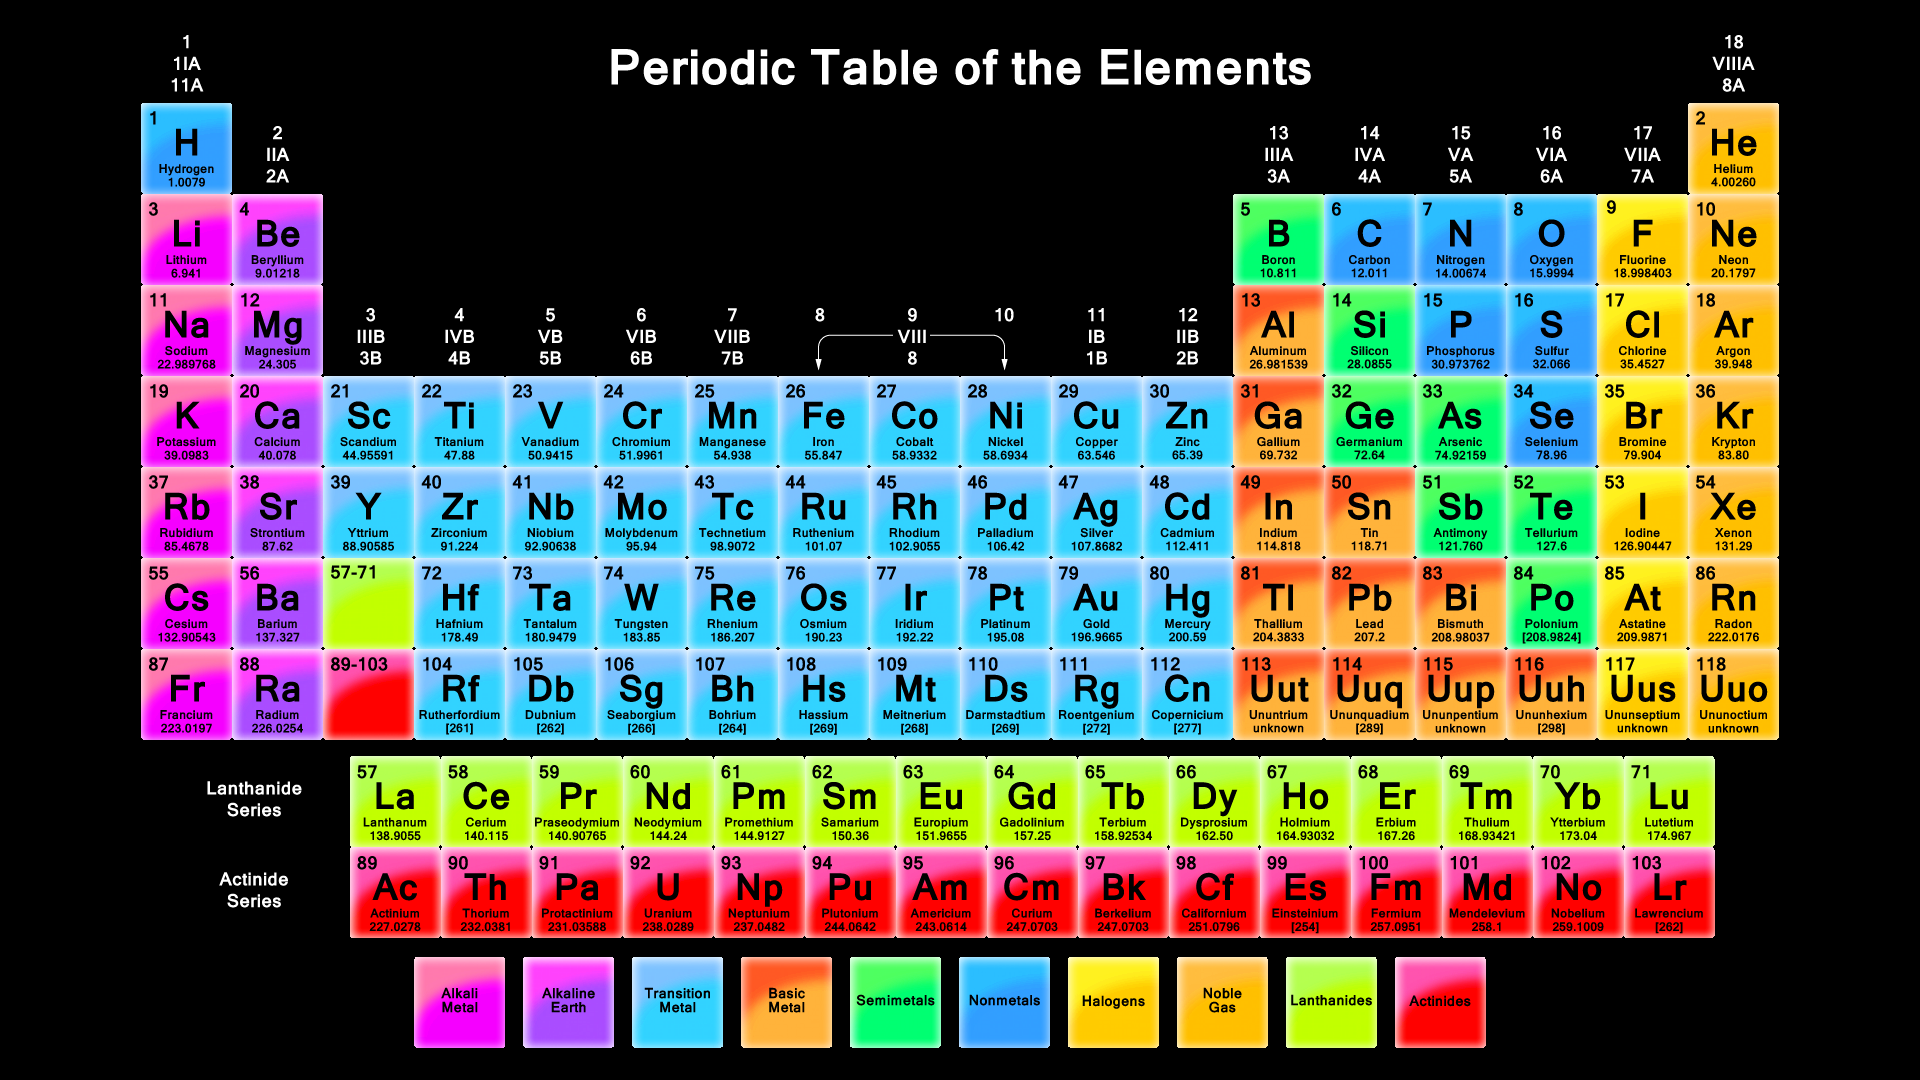 Download elements periodic table chemistry infographics 23668 9 download elements periodic table chemistry infographics 23668 9 hd desktop wallpapers wallpapers87 gamestrikefo Choice Image